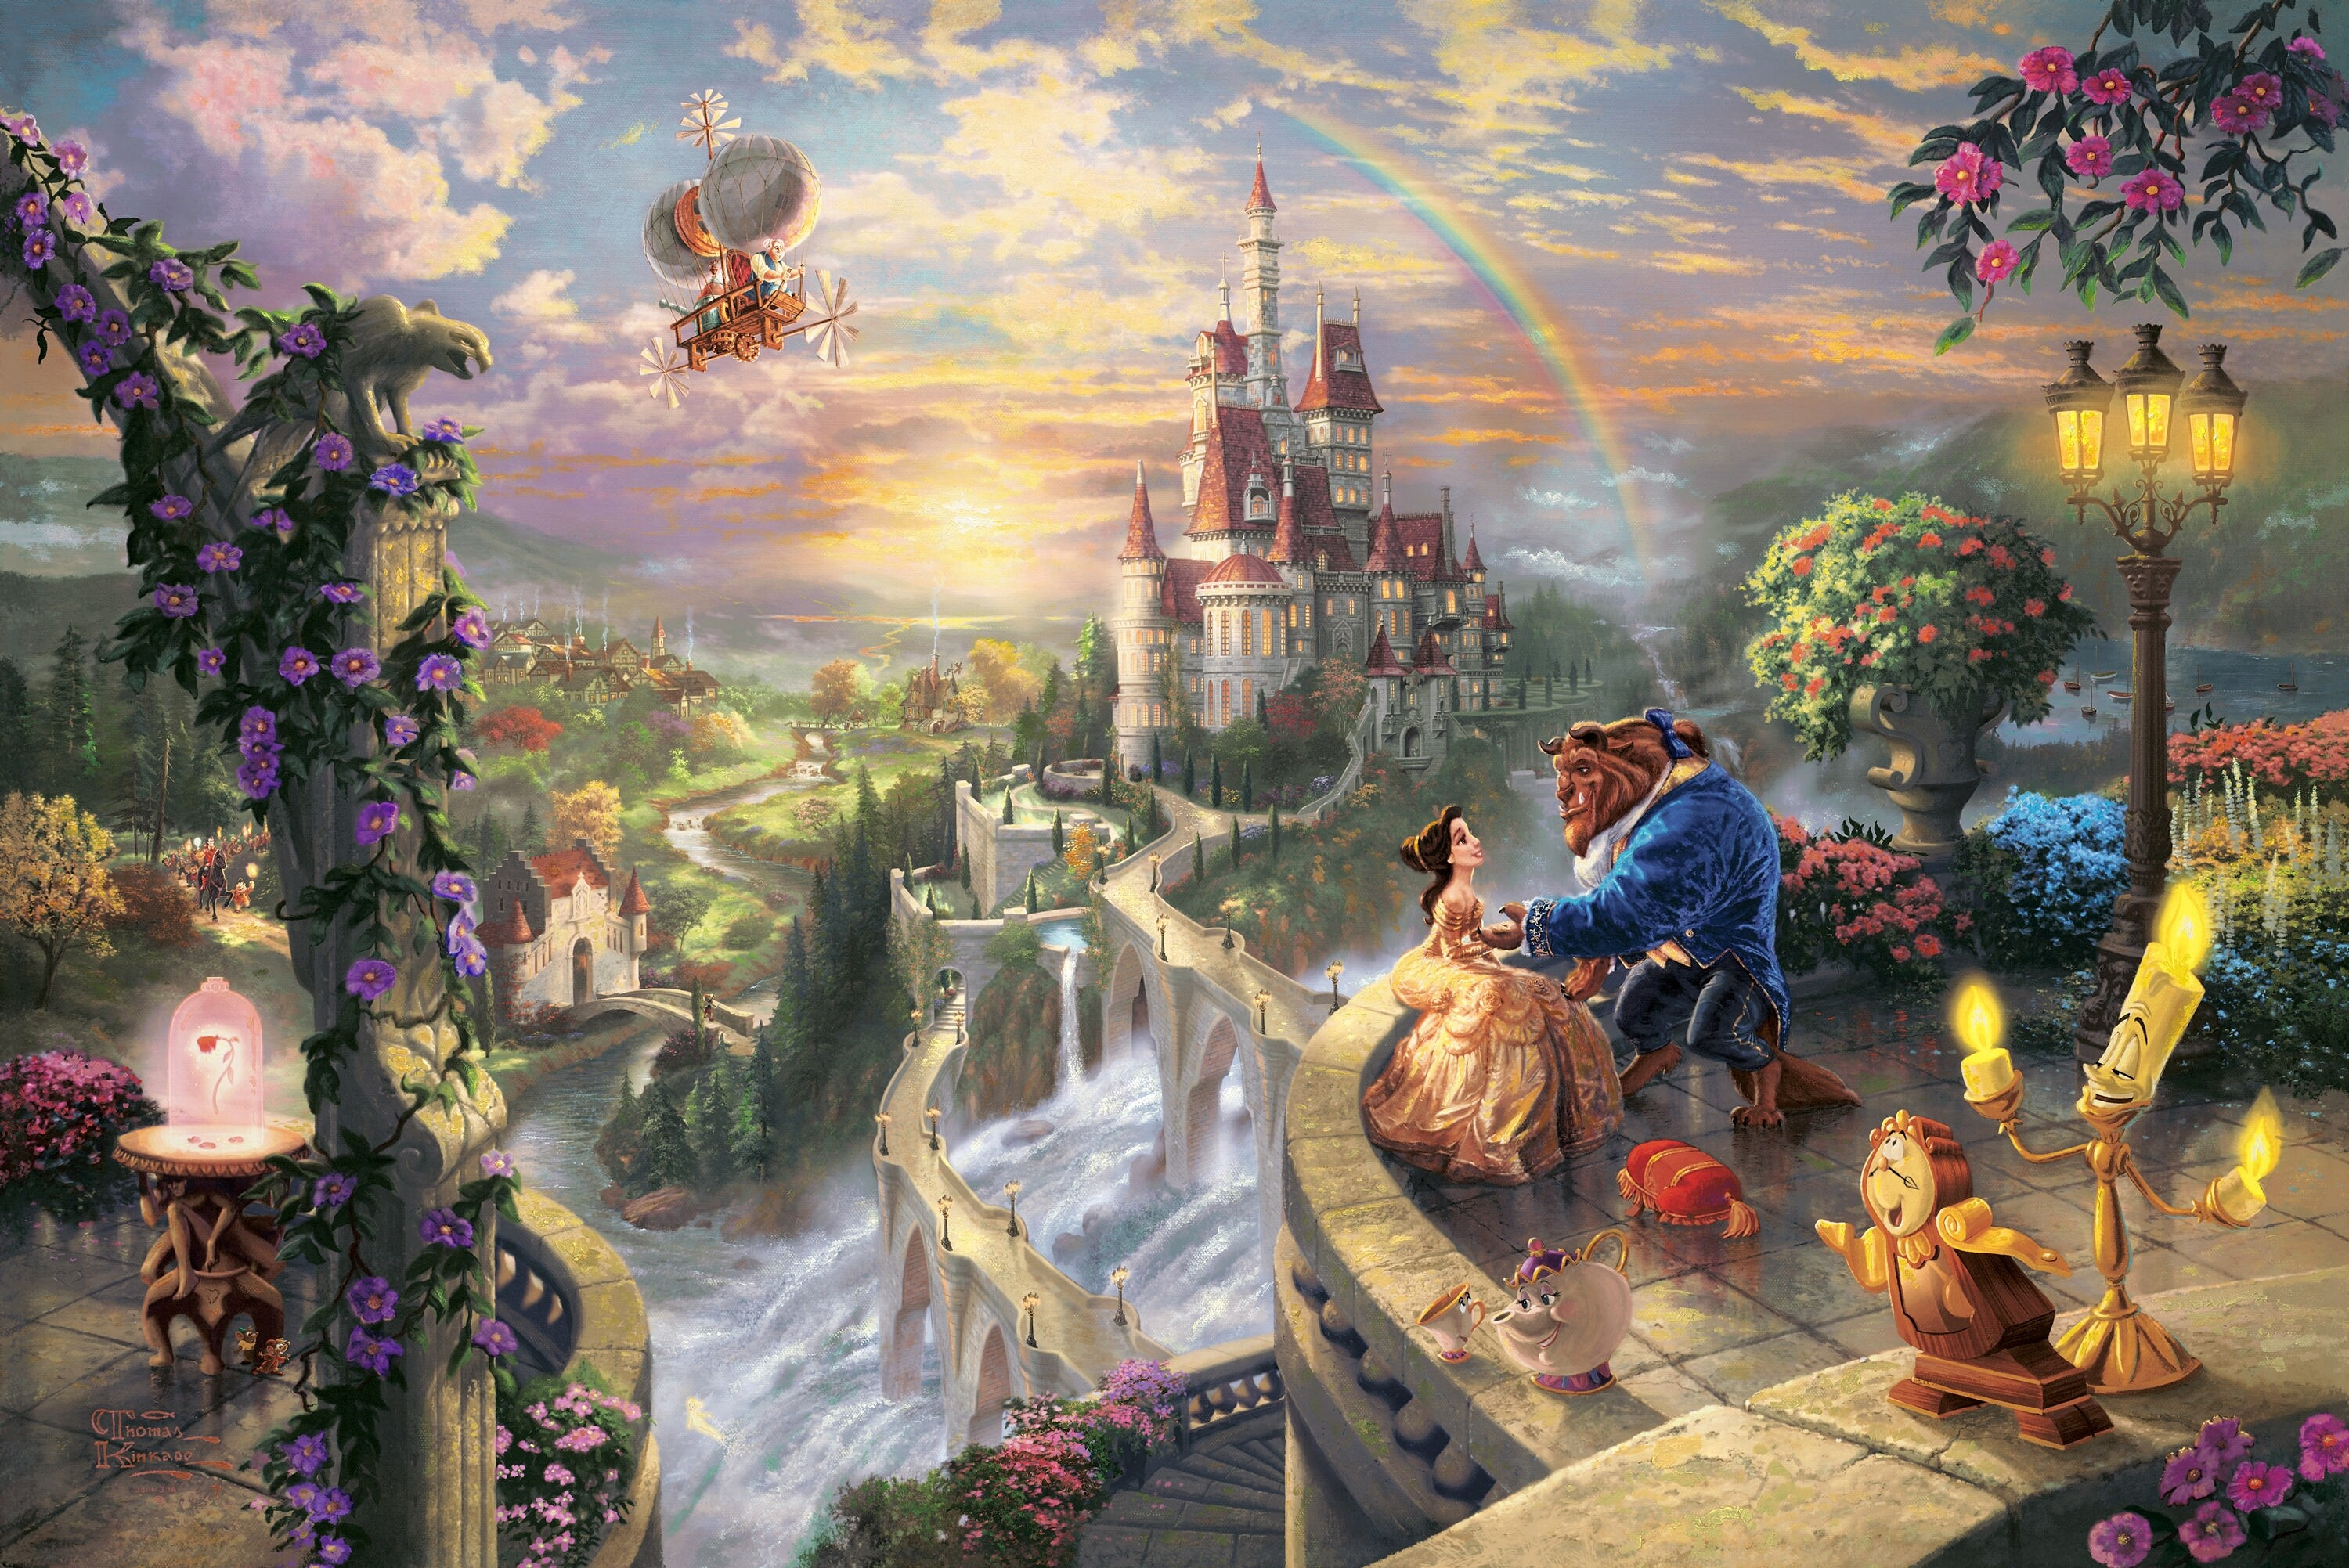 Beauty And The Beast Background 1 Download Free Stunning Full HD